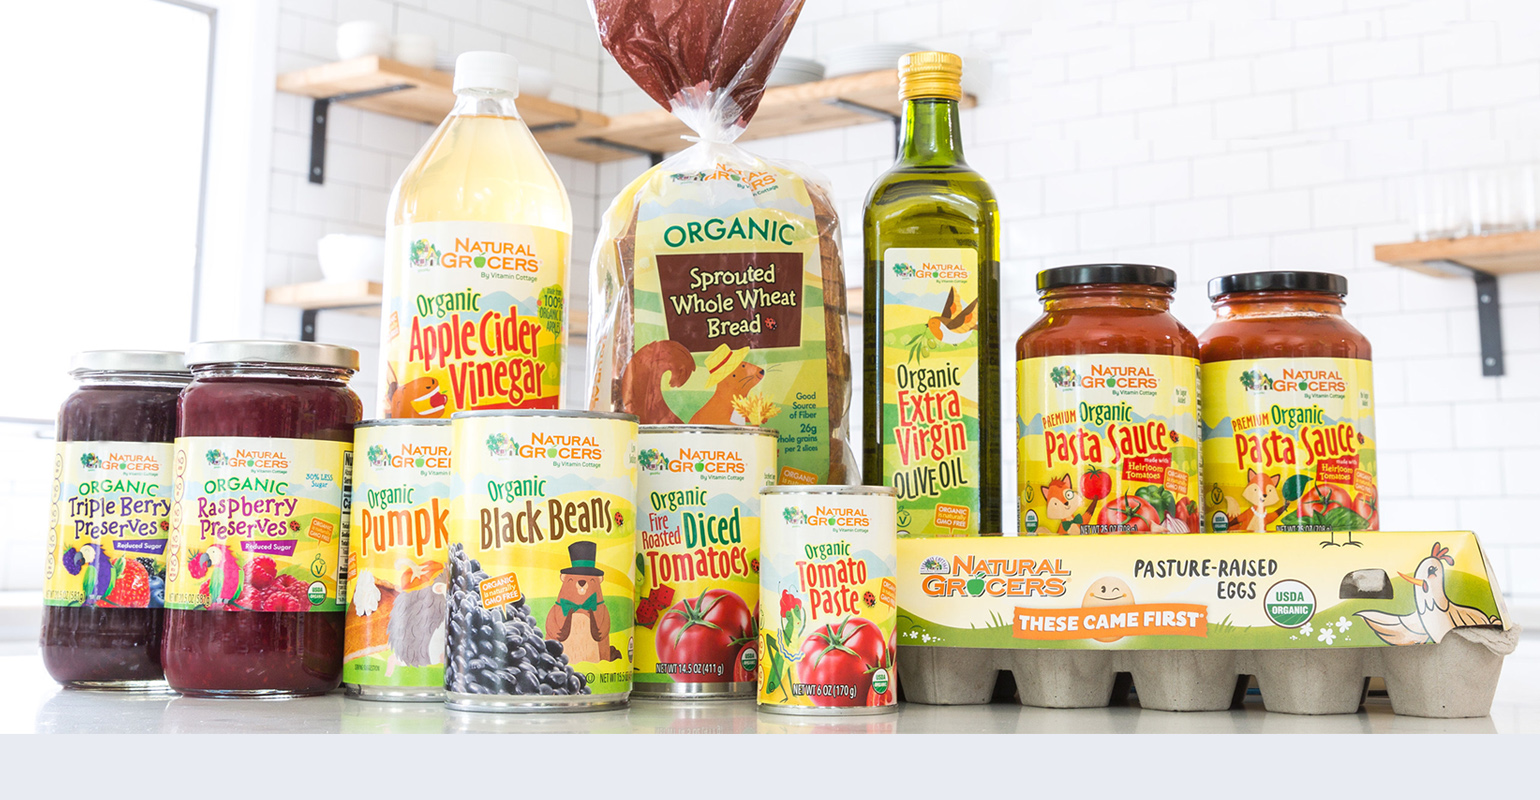 natural-grocers-private-label-promo.jpg